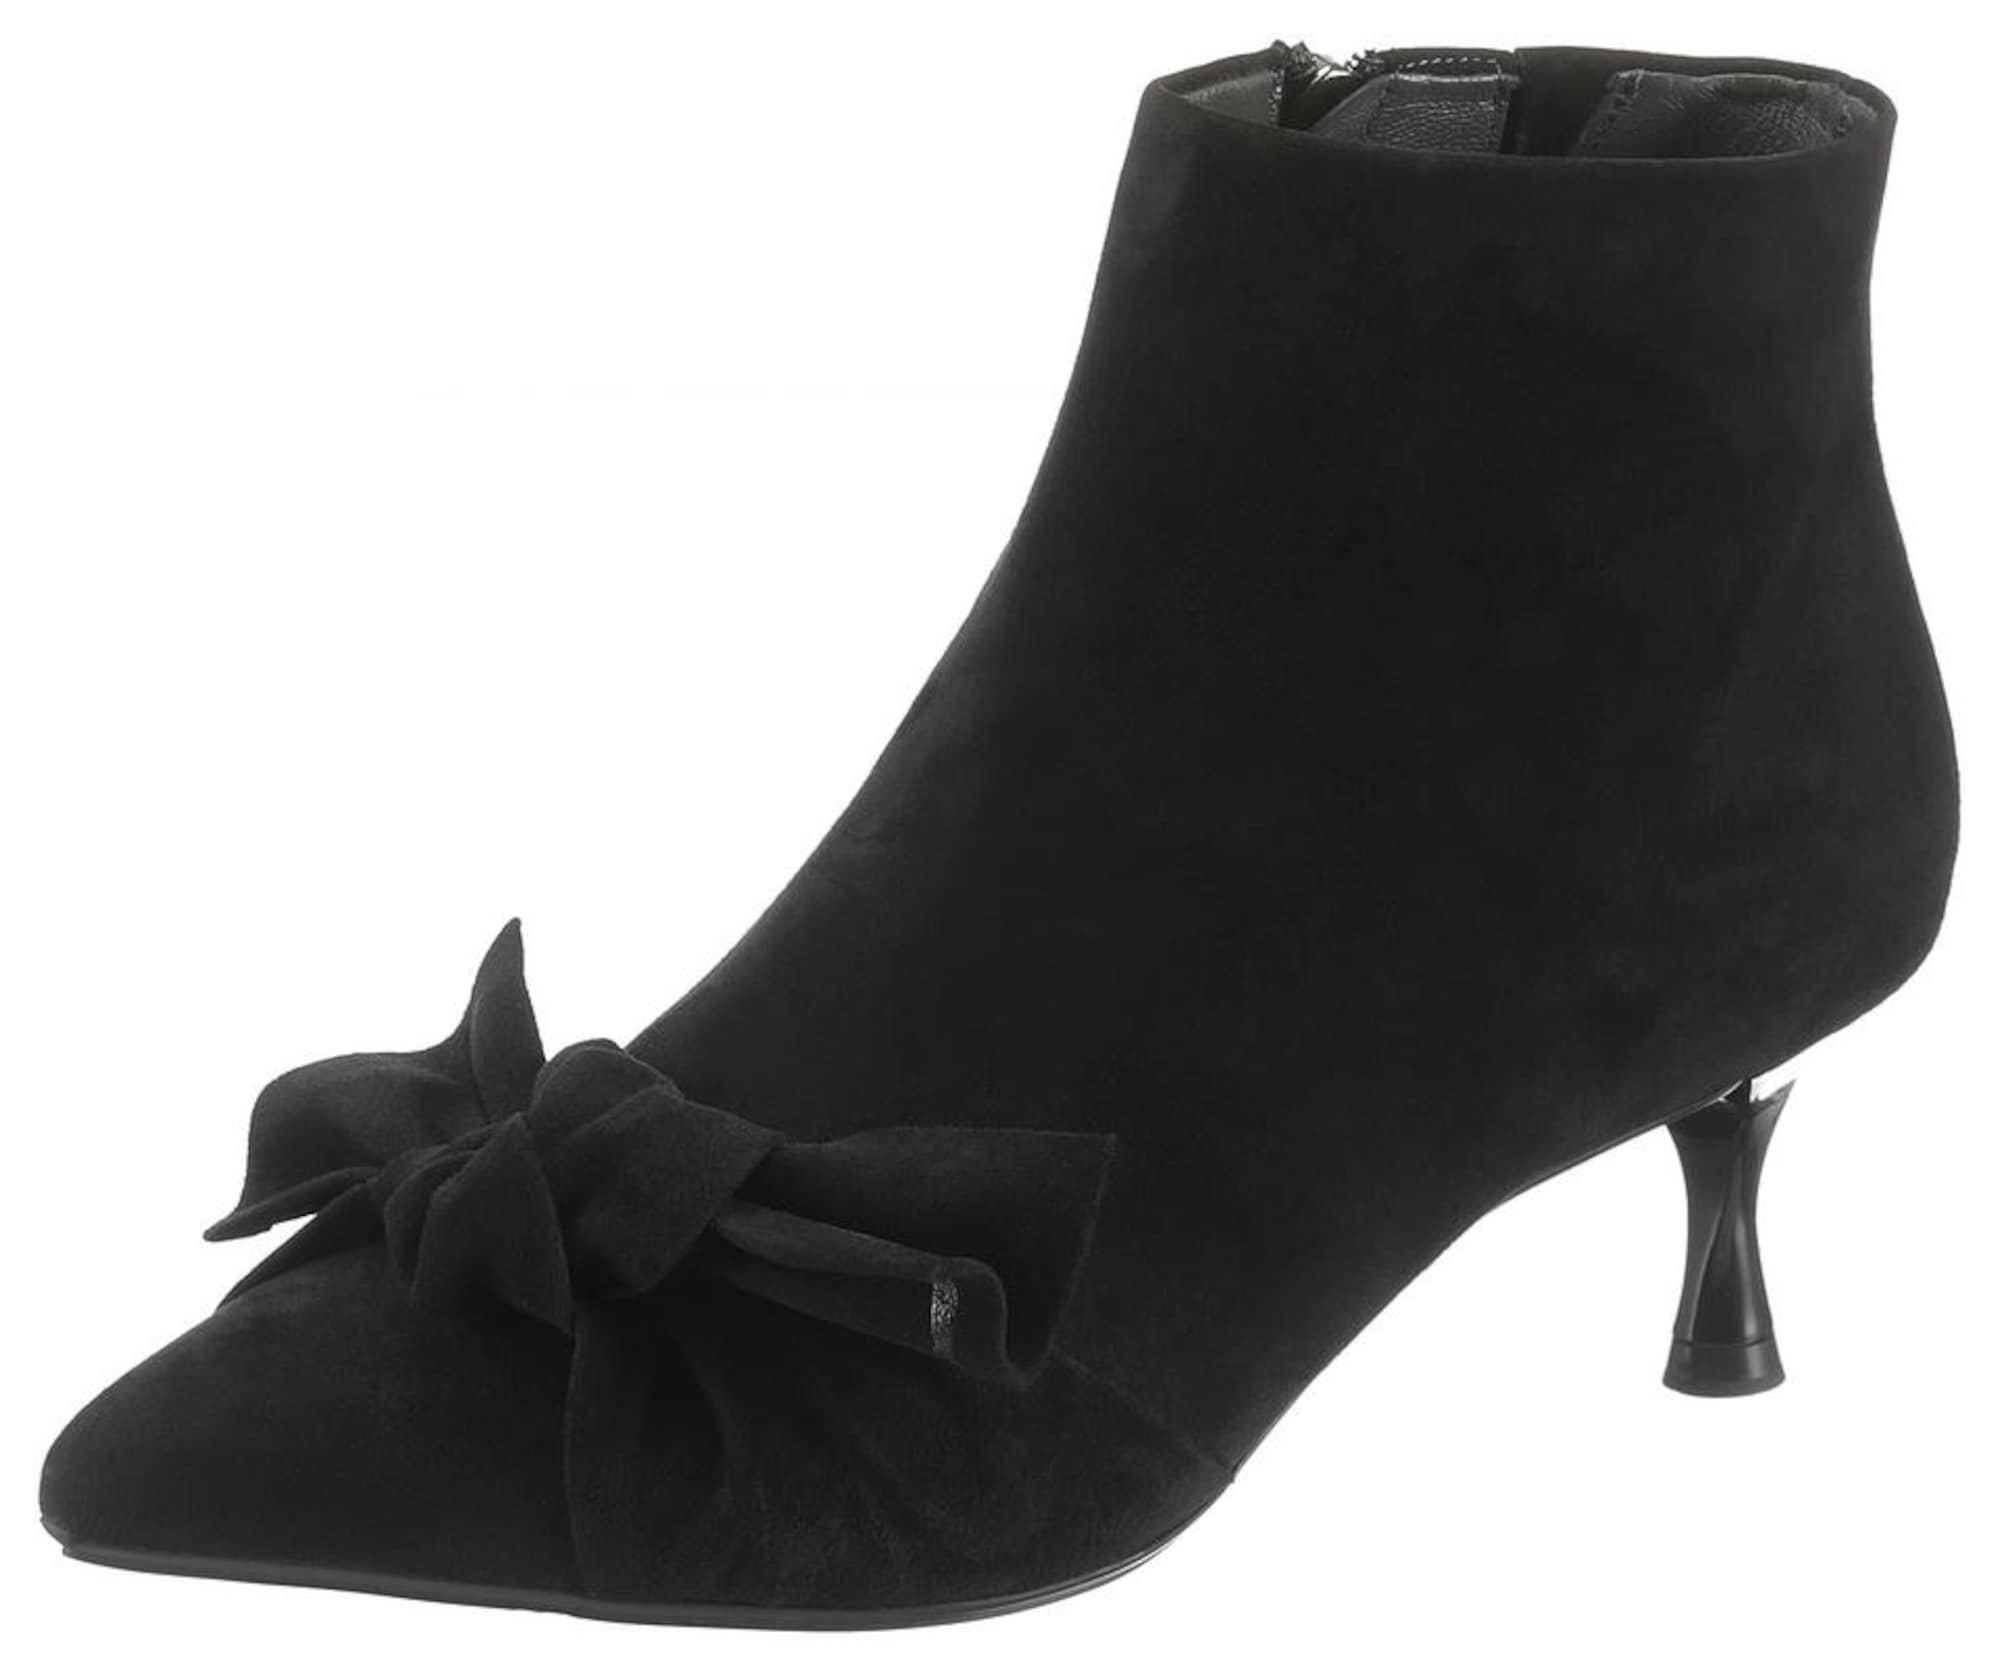 peter kaiser - Ankle Boot ´Qence´